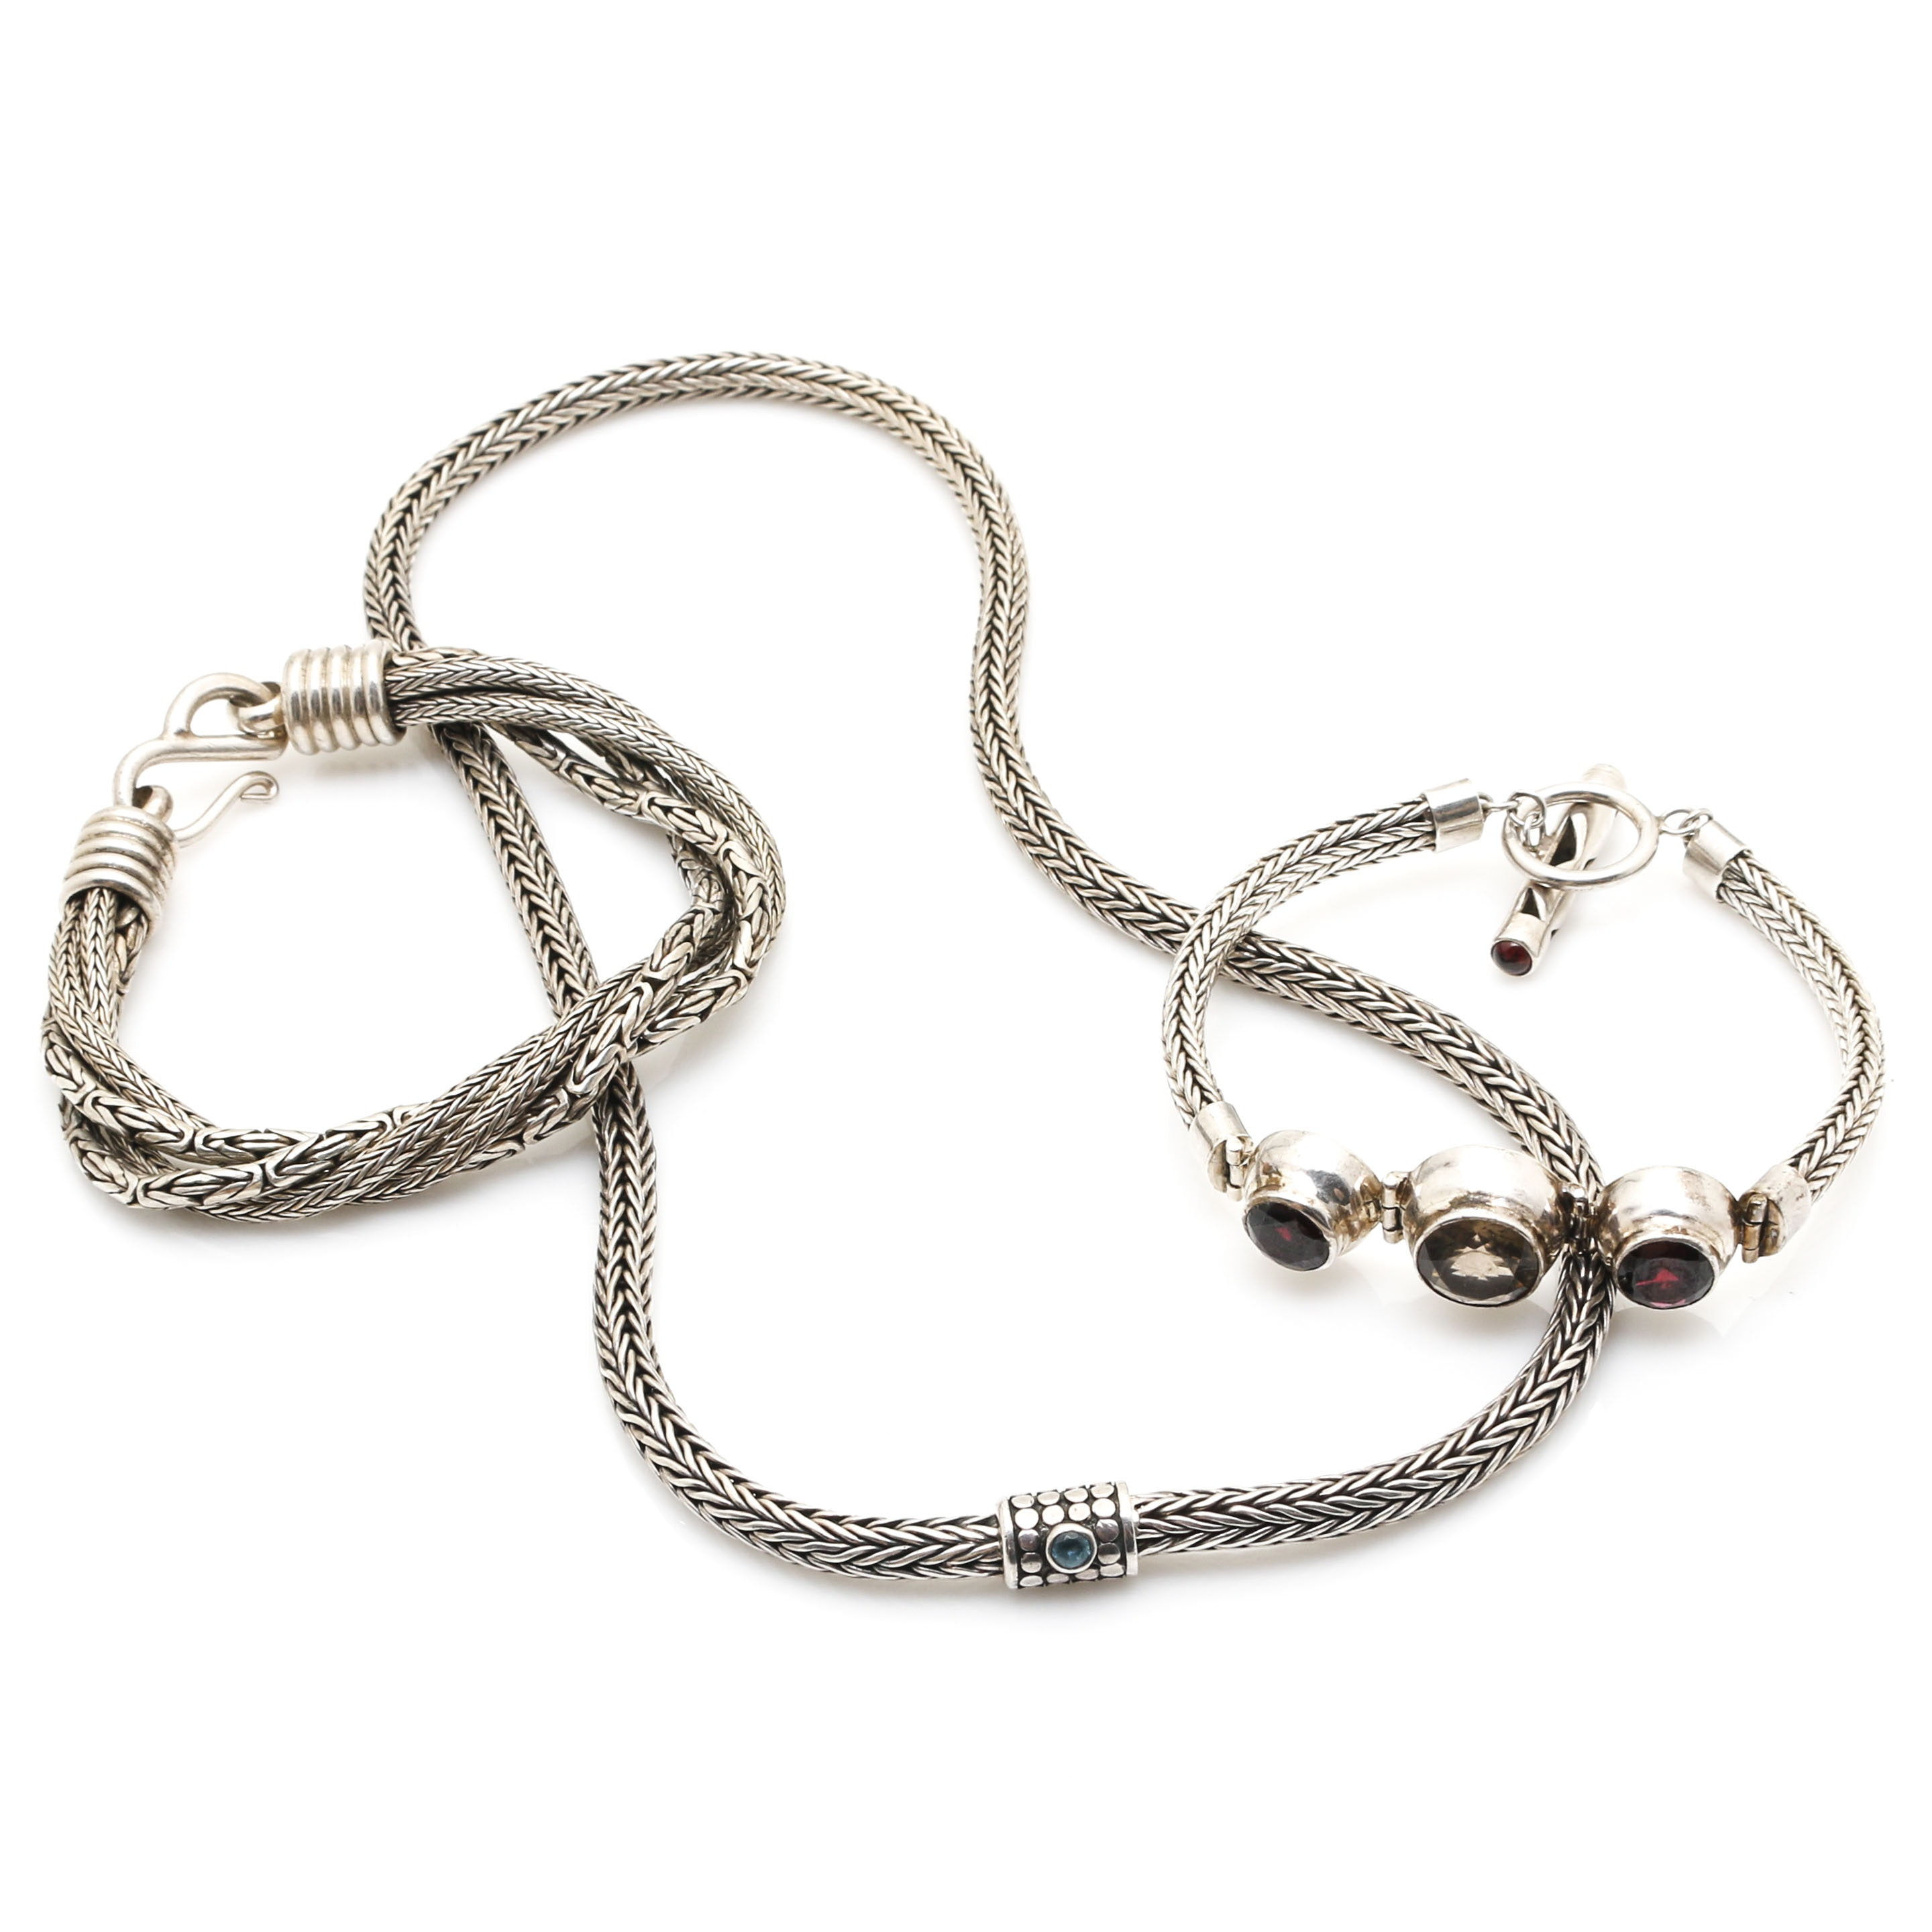 Sterling Silver Foxtail Chain Assortment